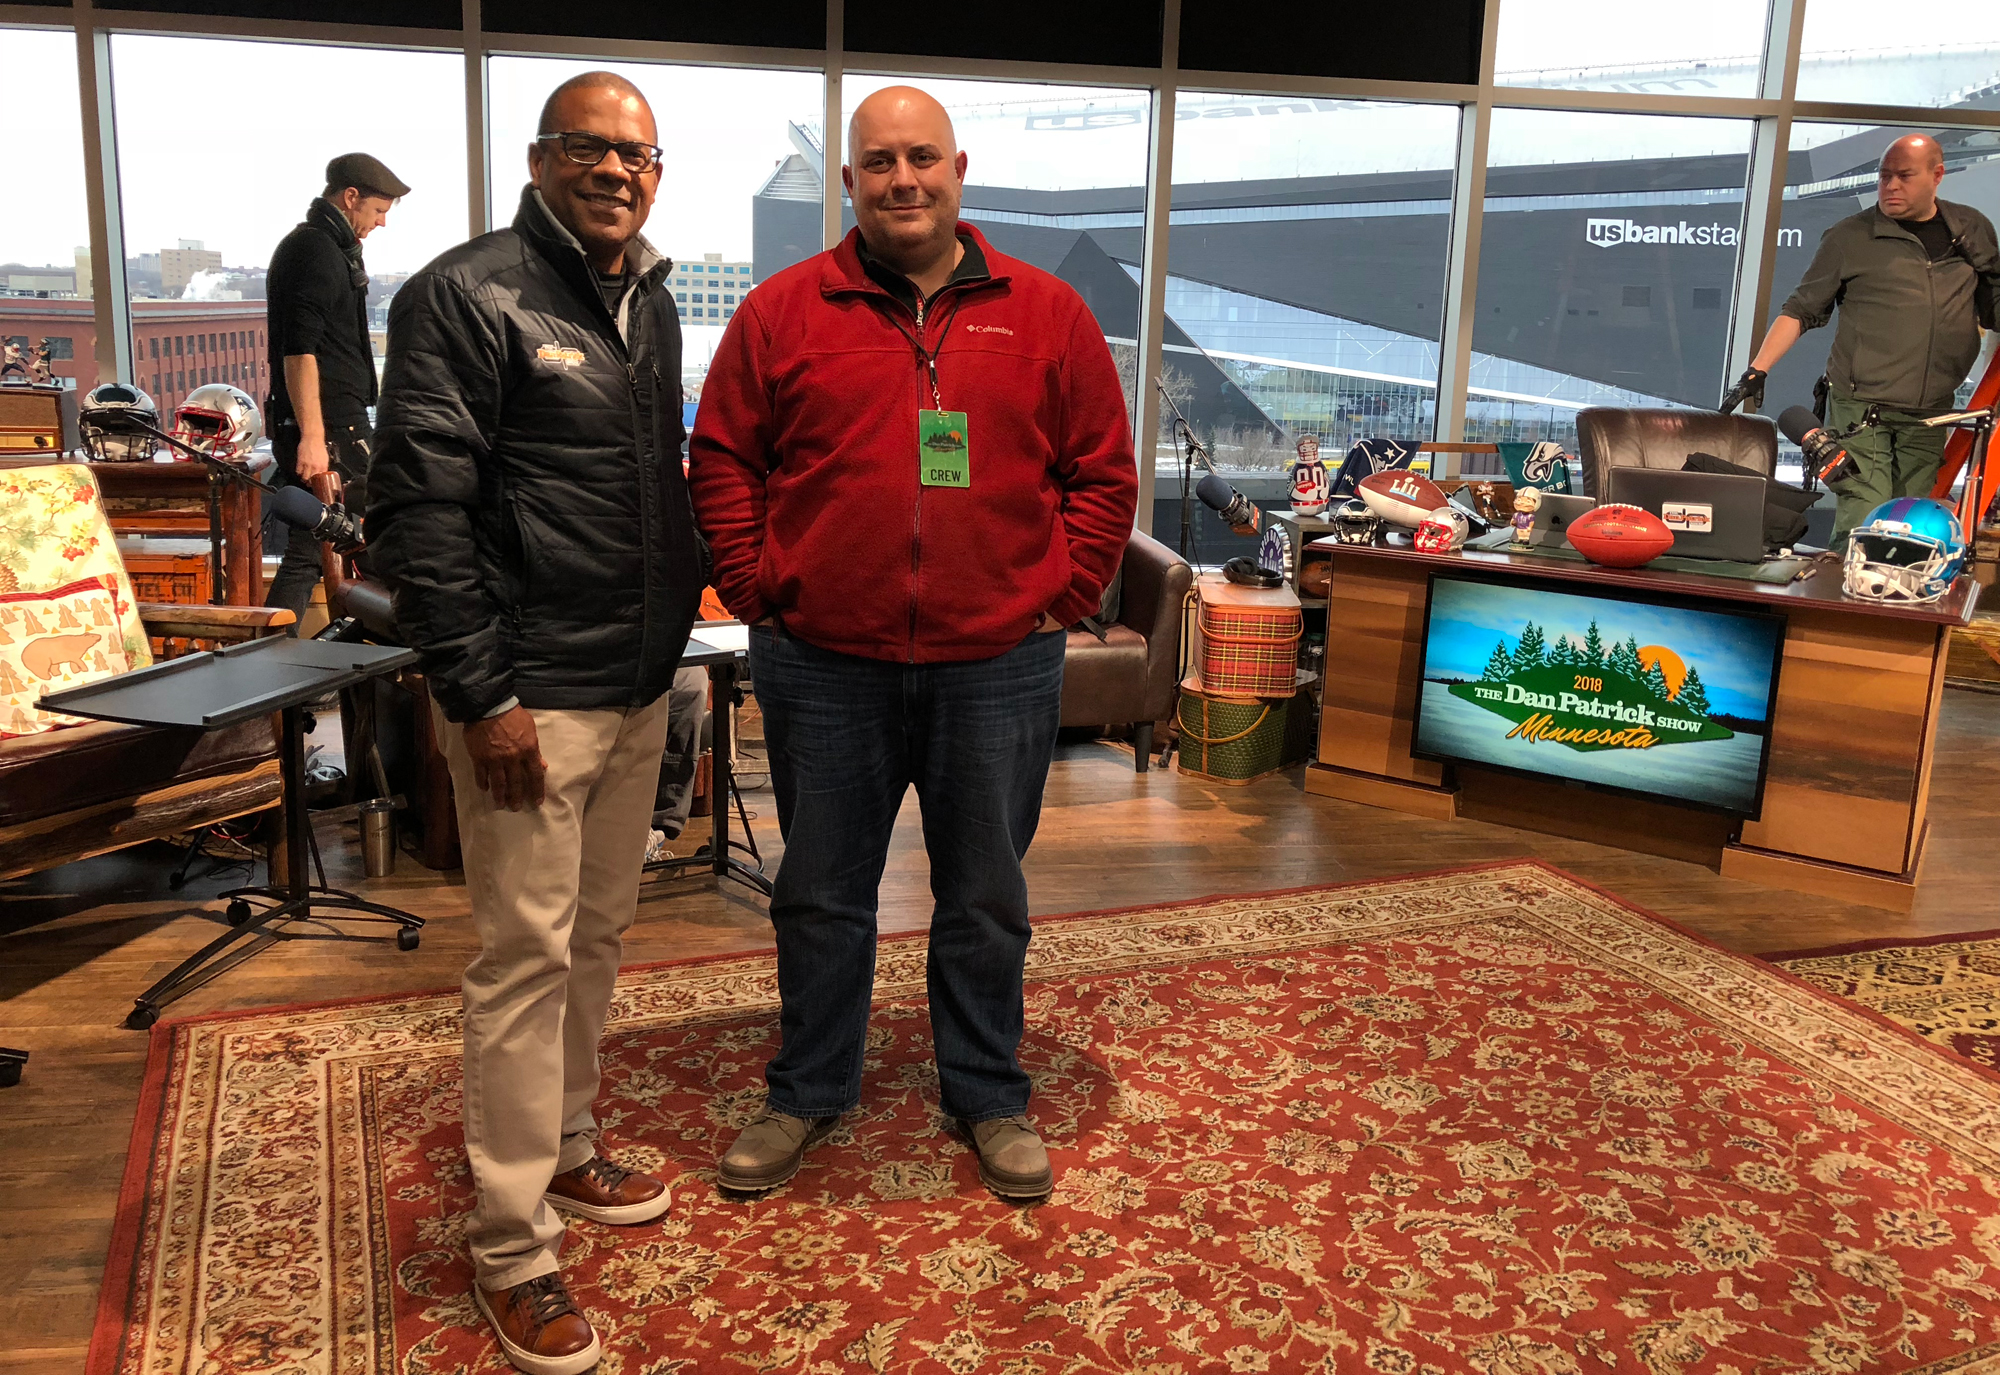 Live From Super Bowl LII: AT&T's Dan Patrick Show and Rich Eisen